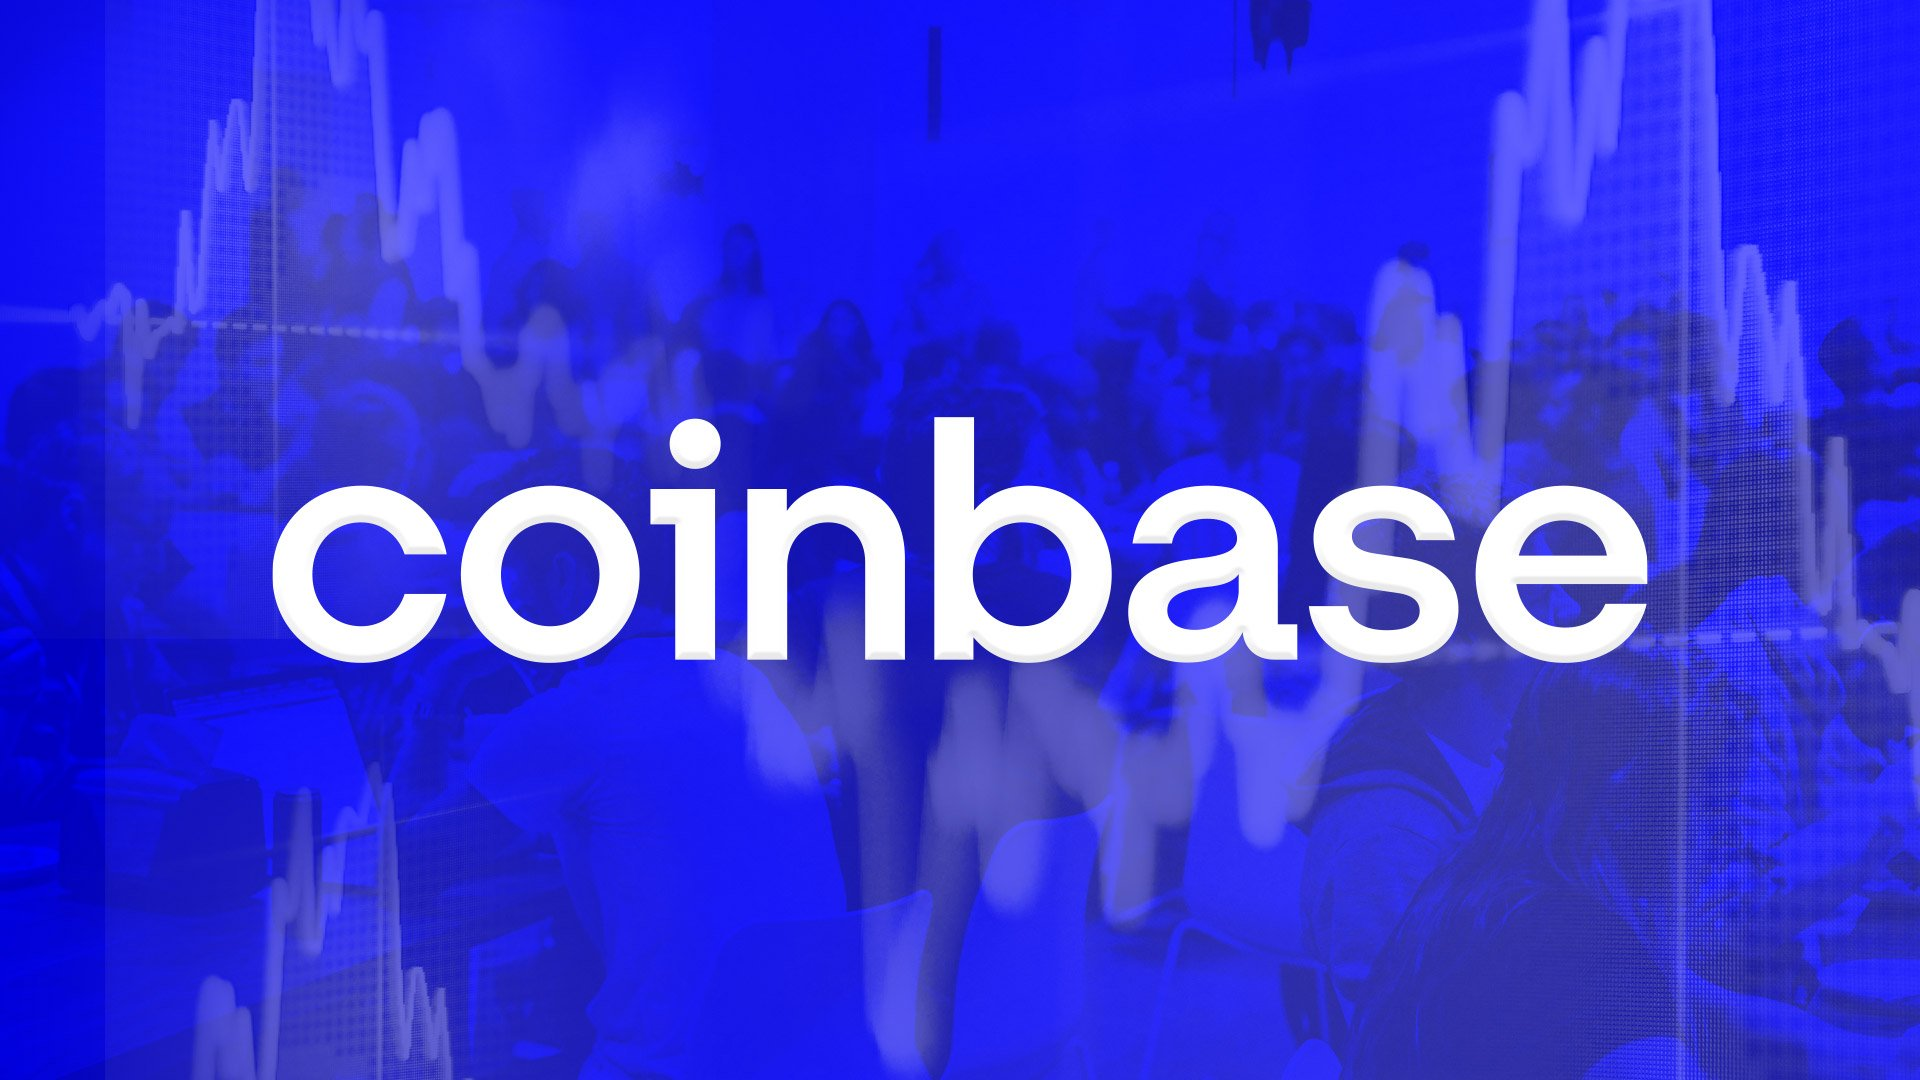 More than 900,000 people signed up for Coinbase's NFT platform waitlist — and it's only day one